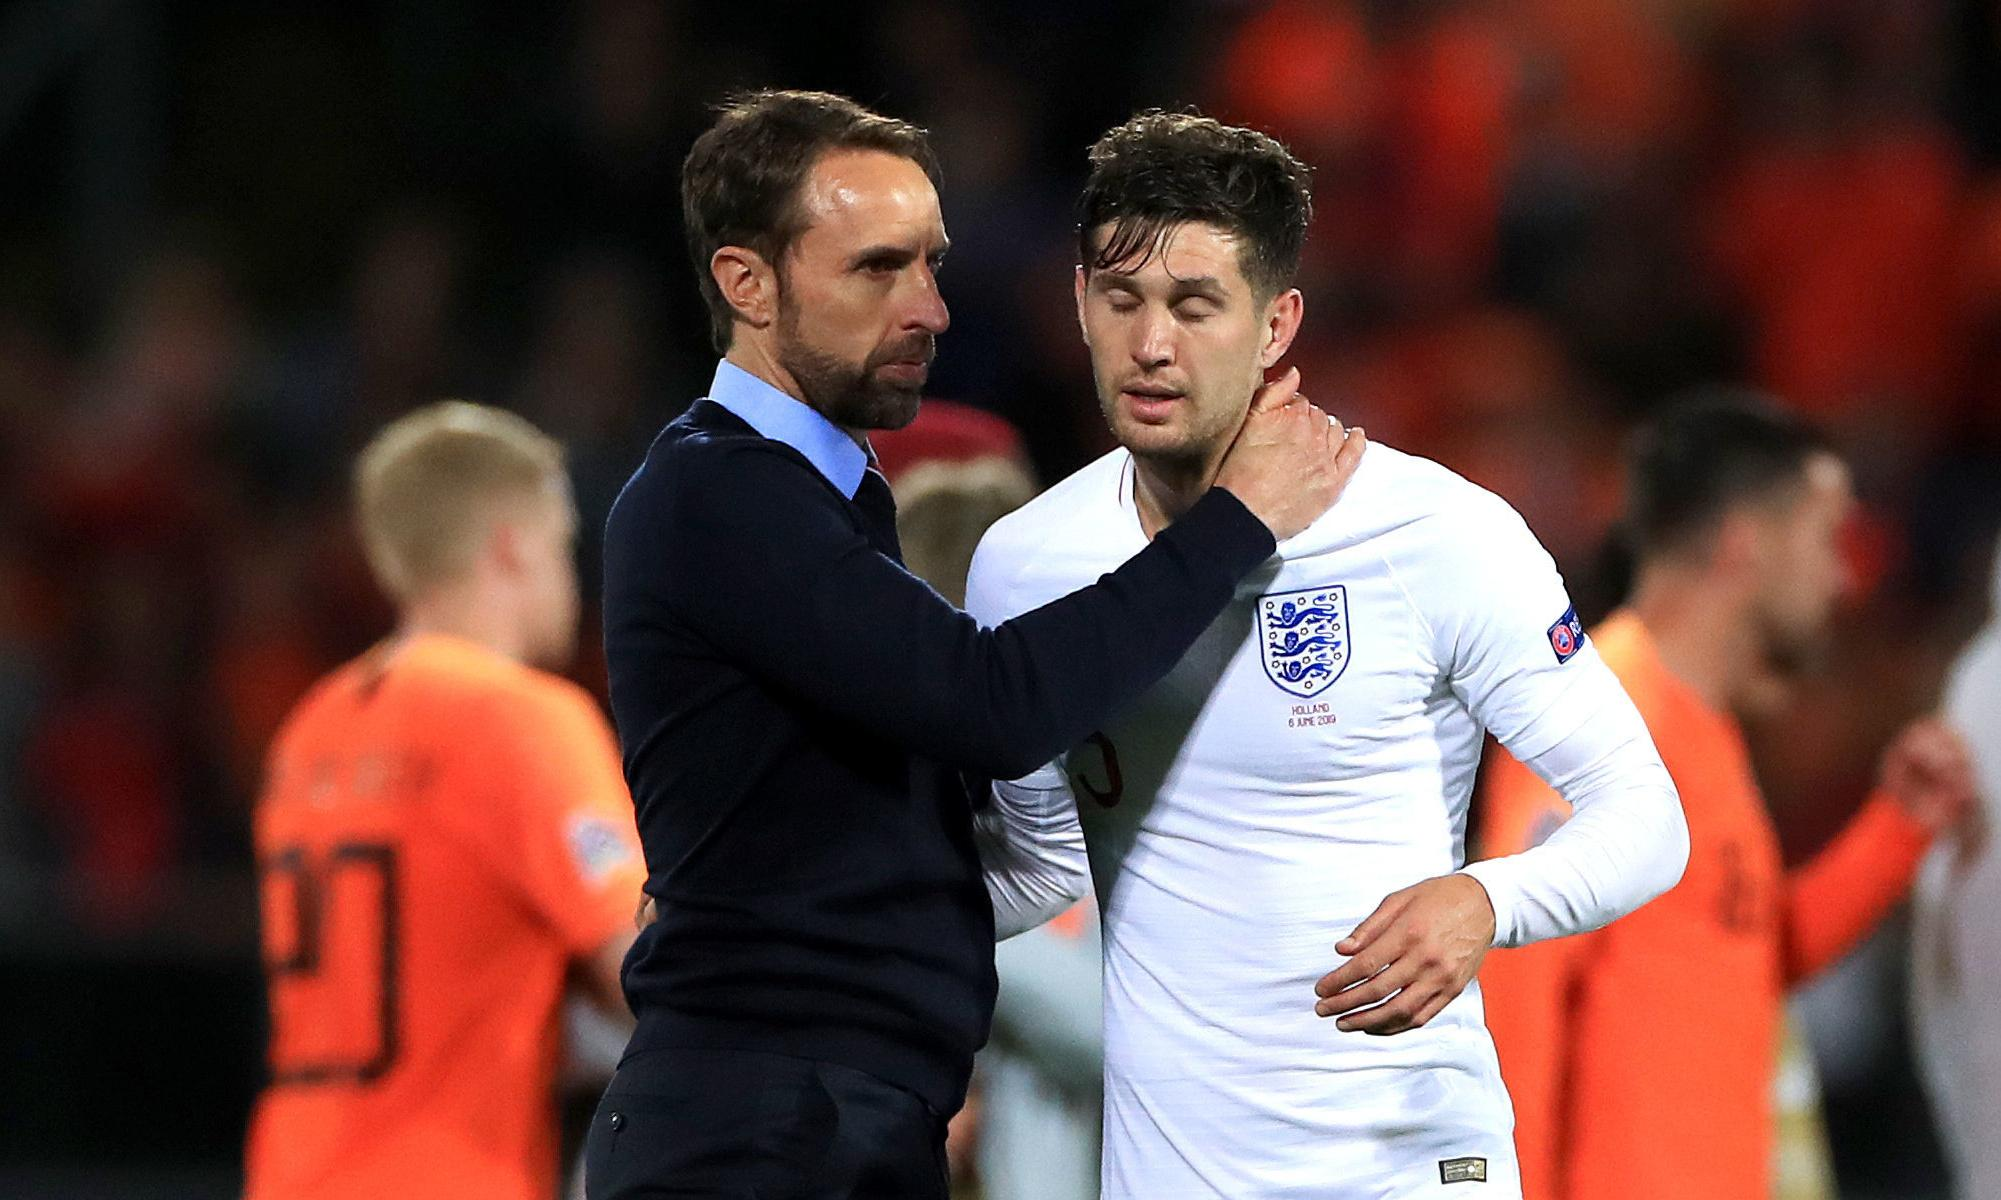 Gareth Southgate fears lack of English players at top clubs could cost his side